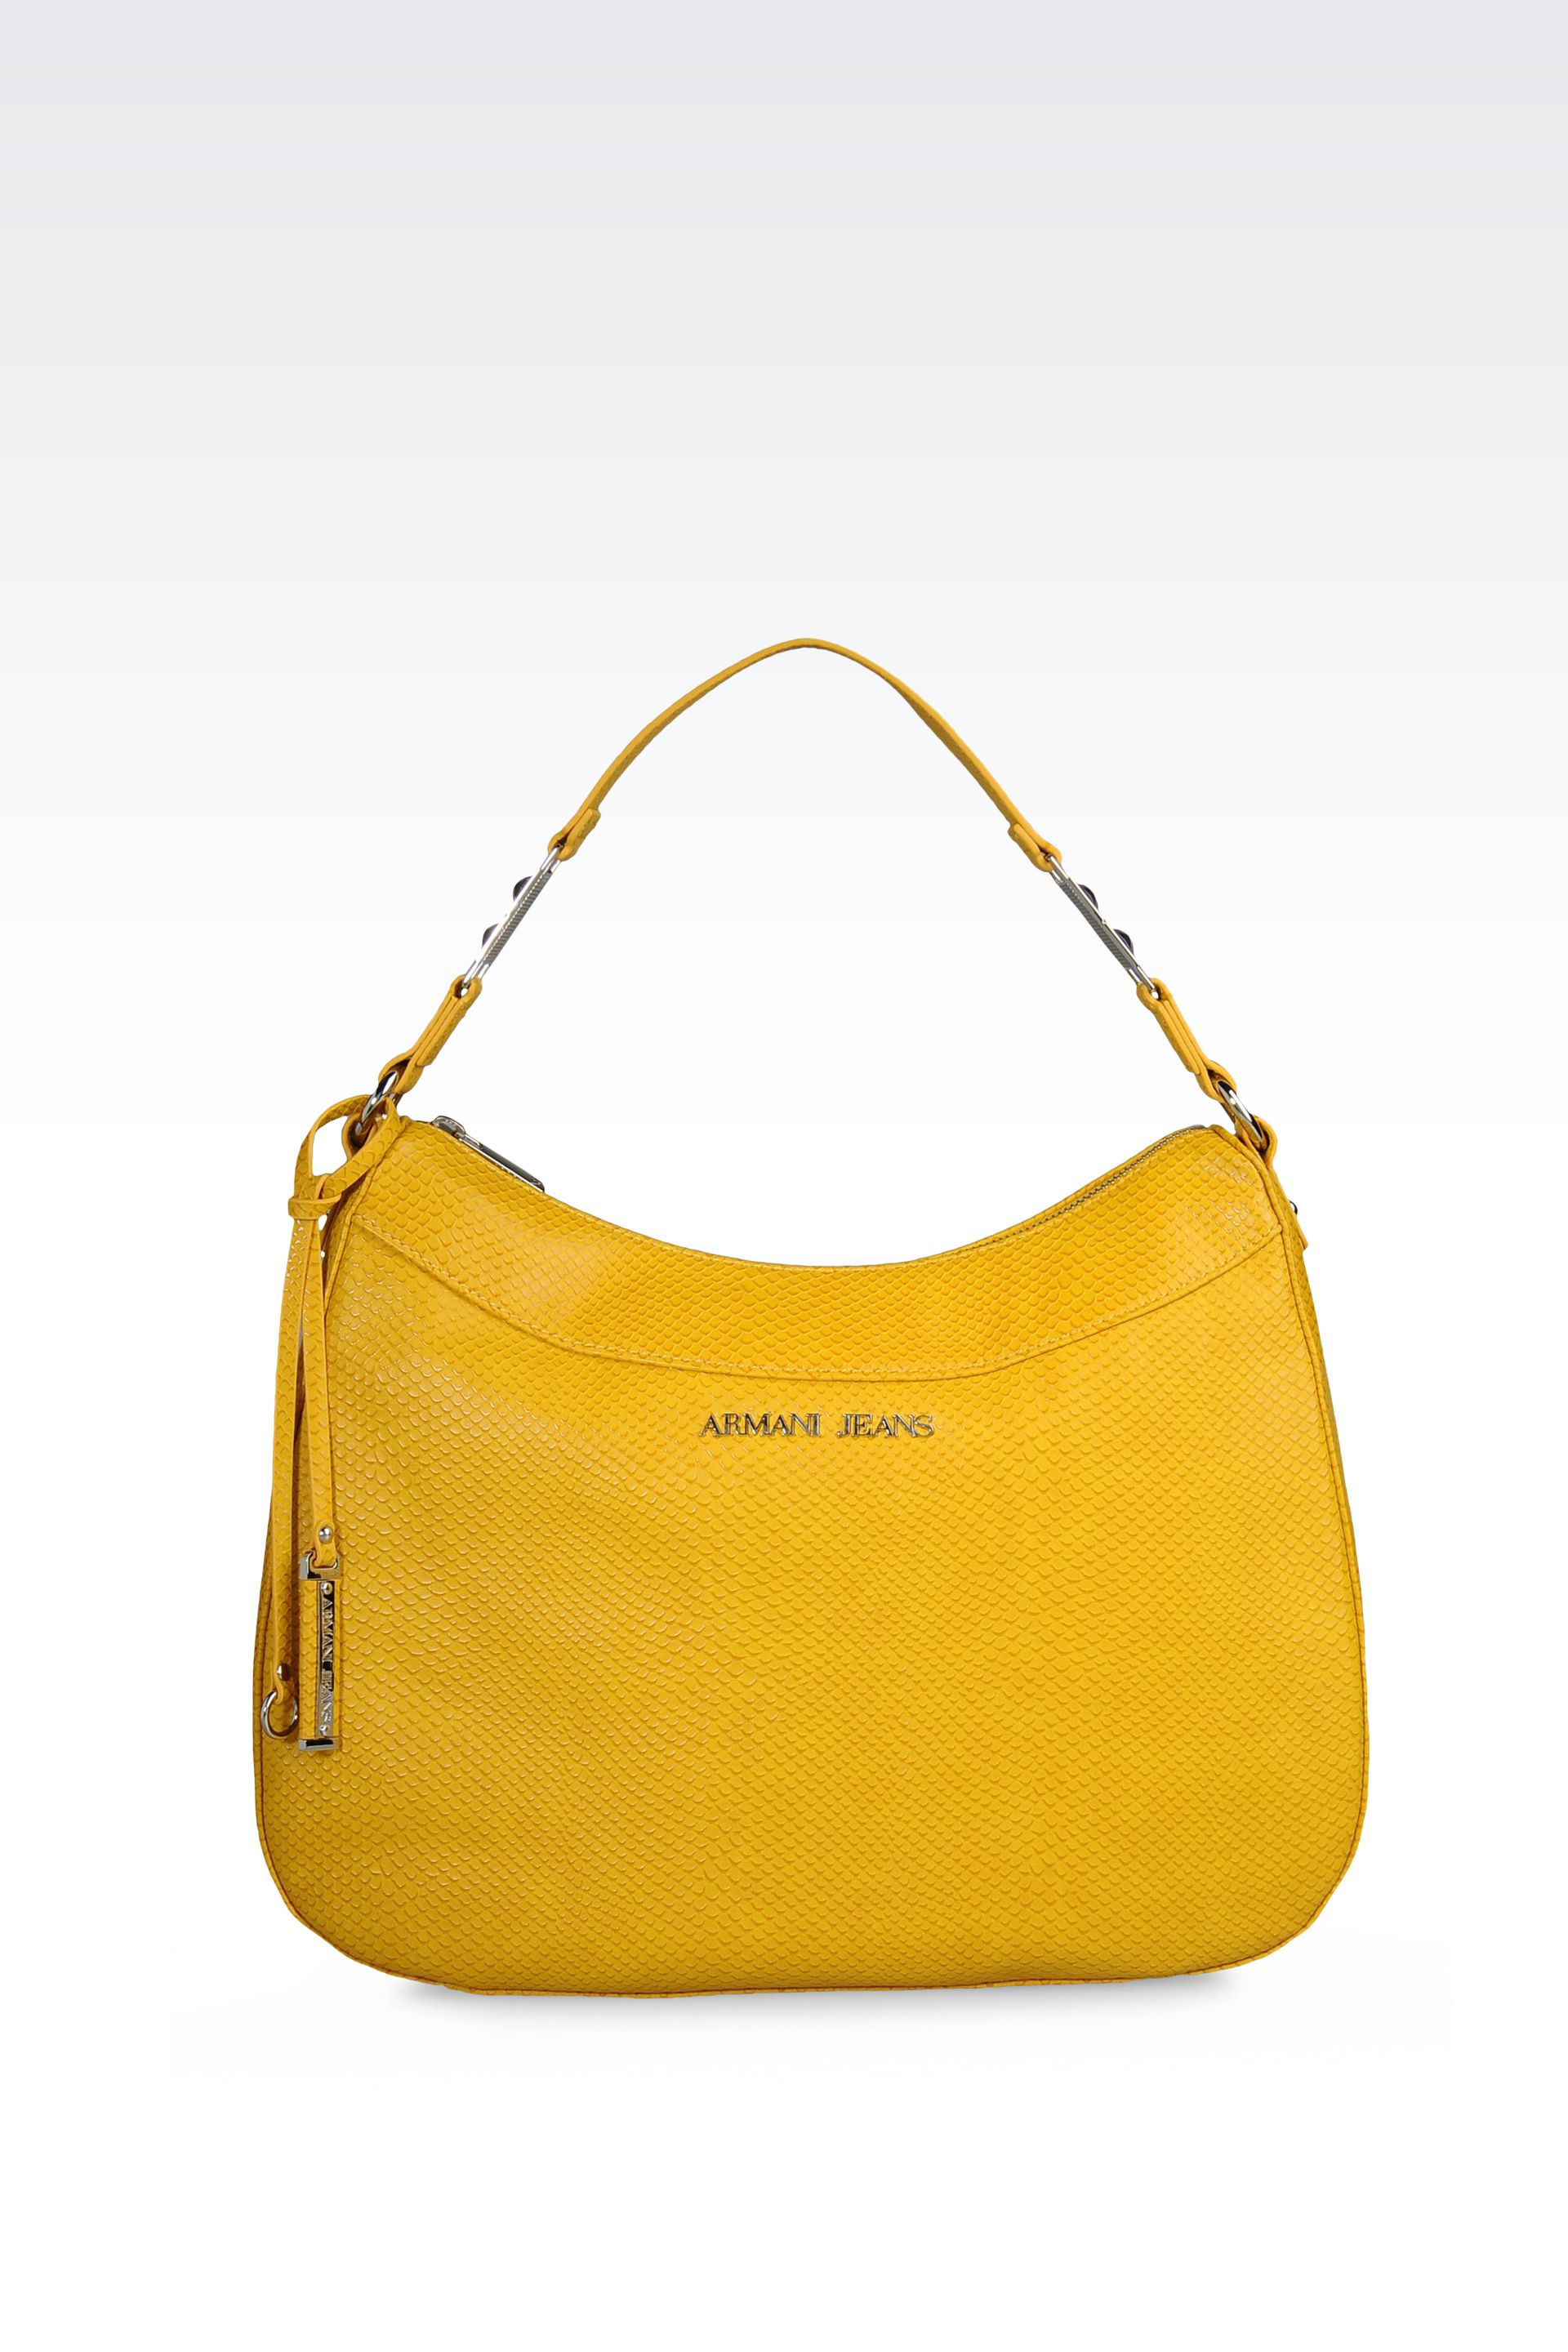 Armani jeans Hobo Bag in Reptileprint Faux Leather in Yellow | Lyst